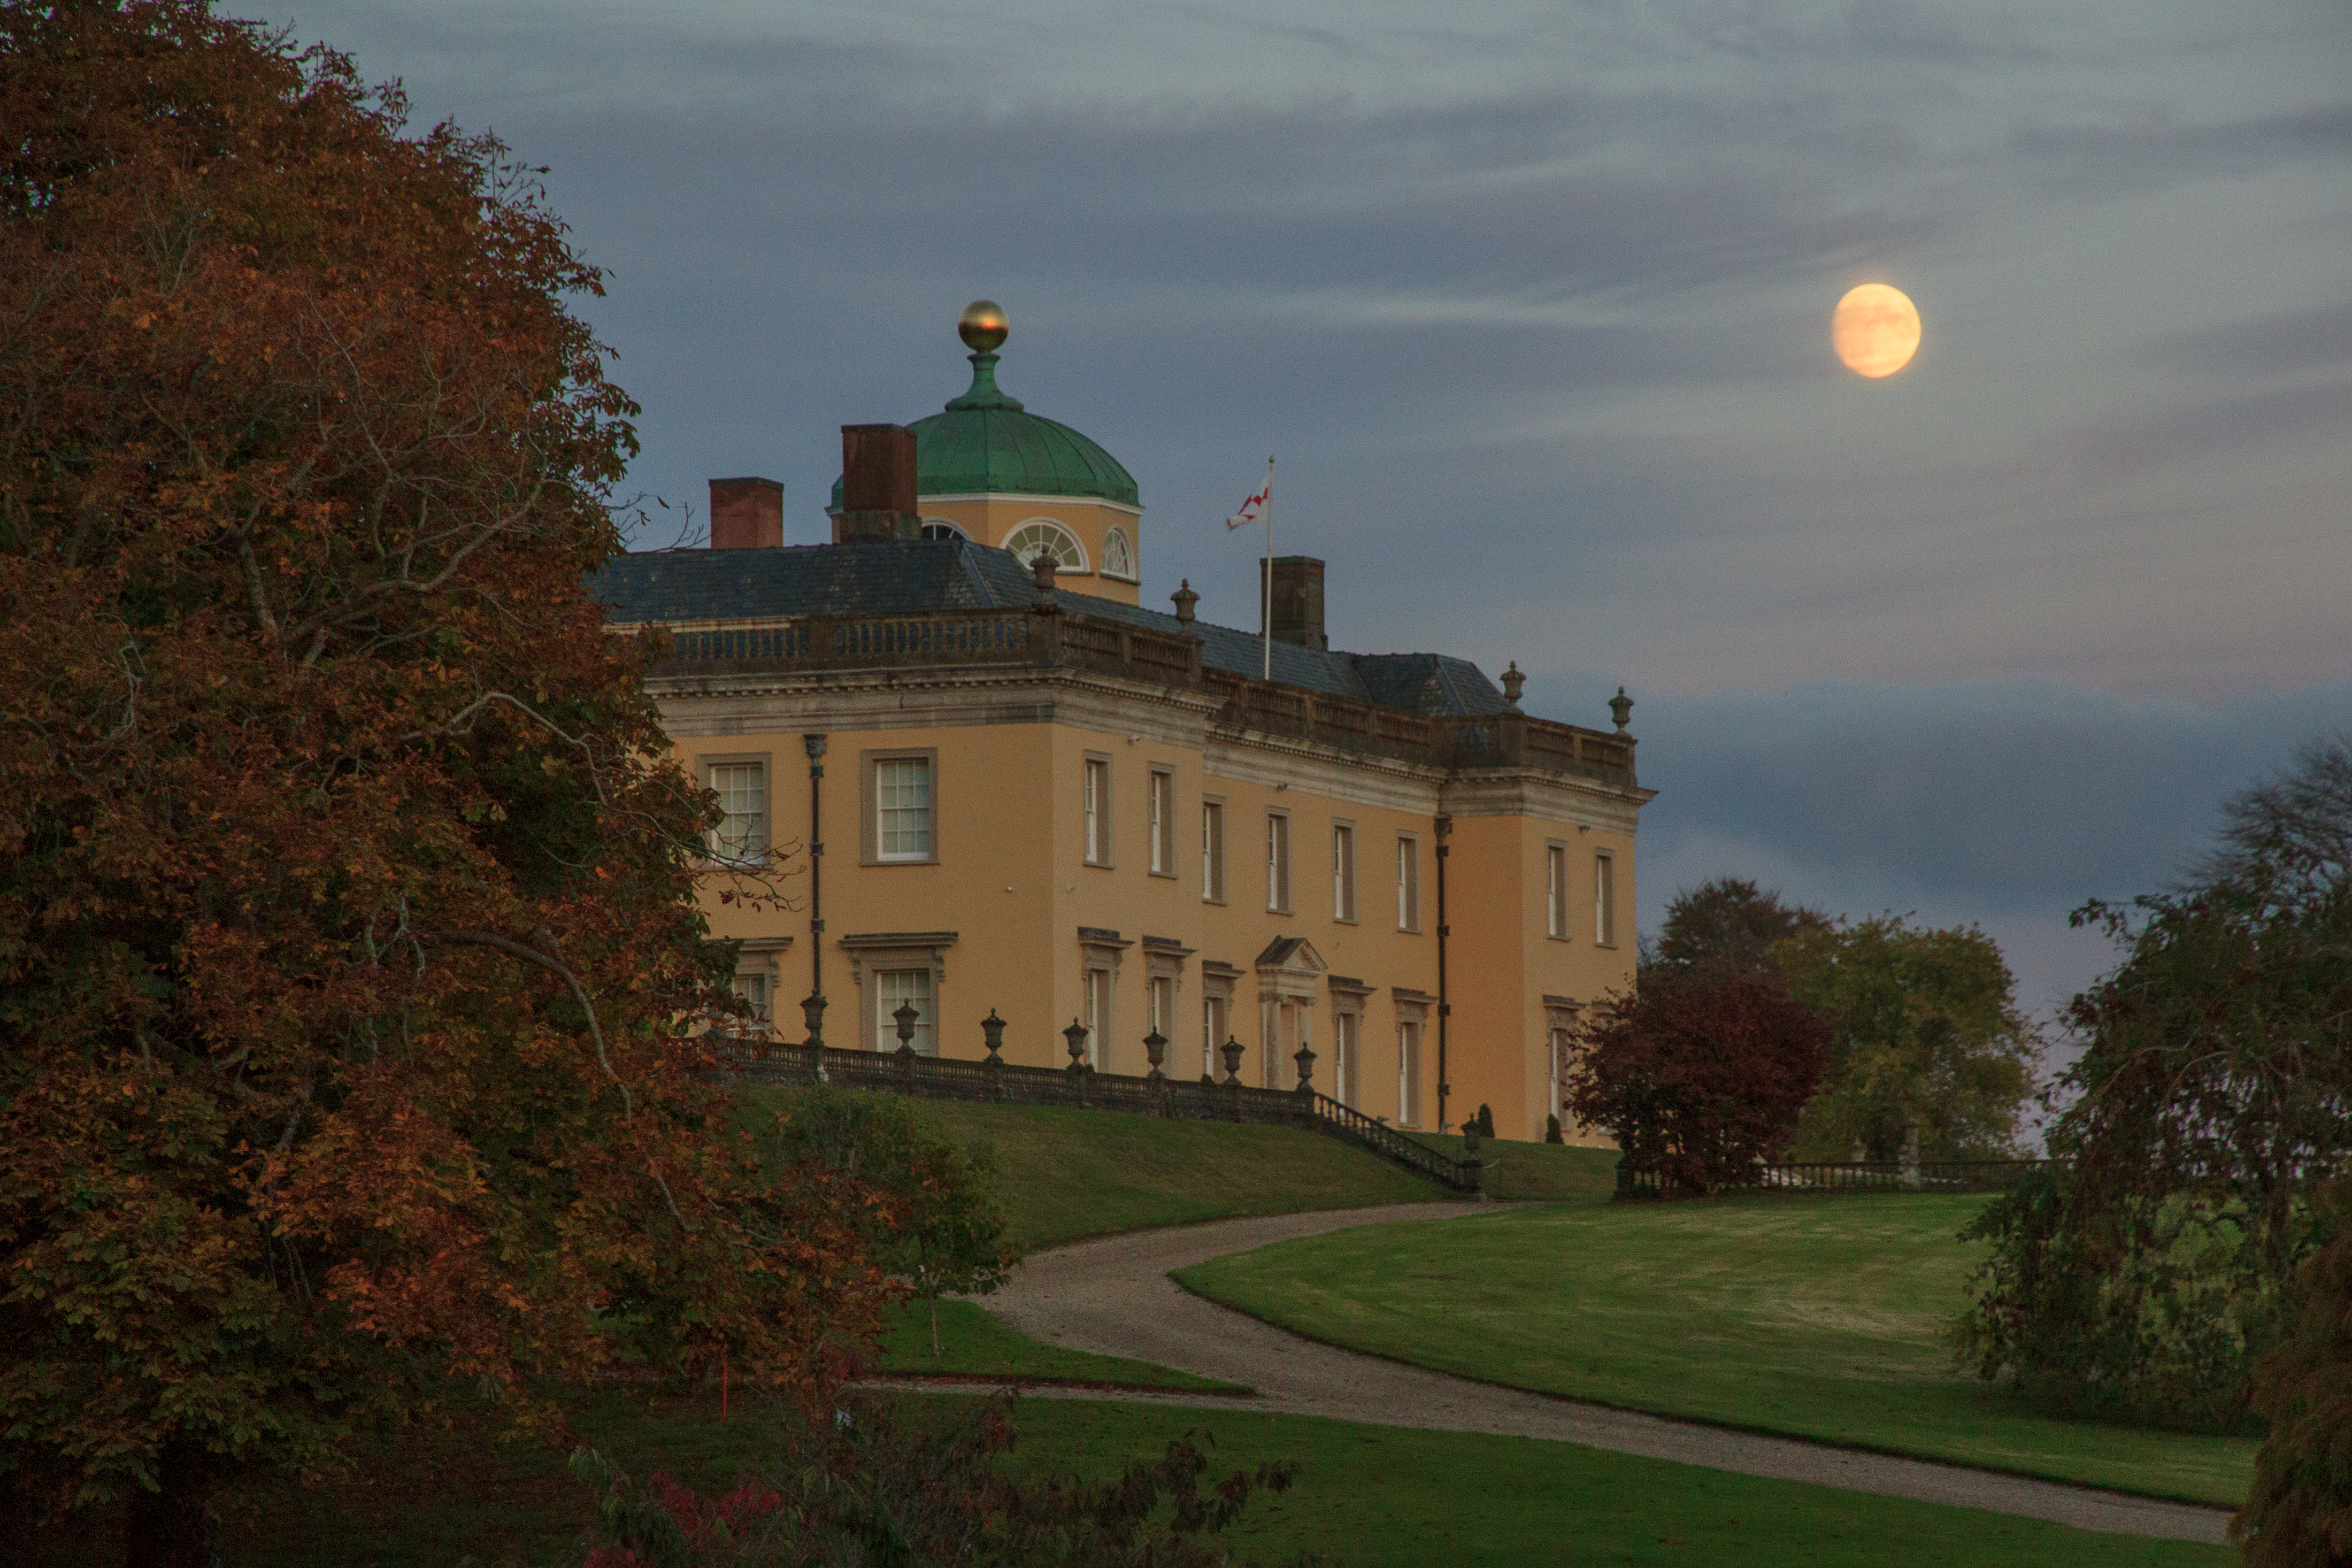 Castle Hill House By Moonlight near South Molton